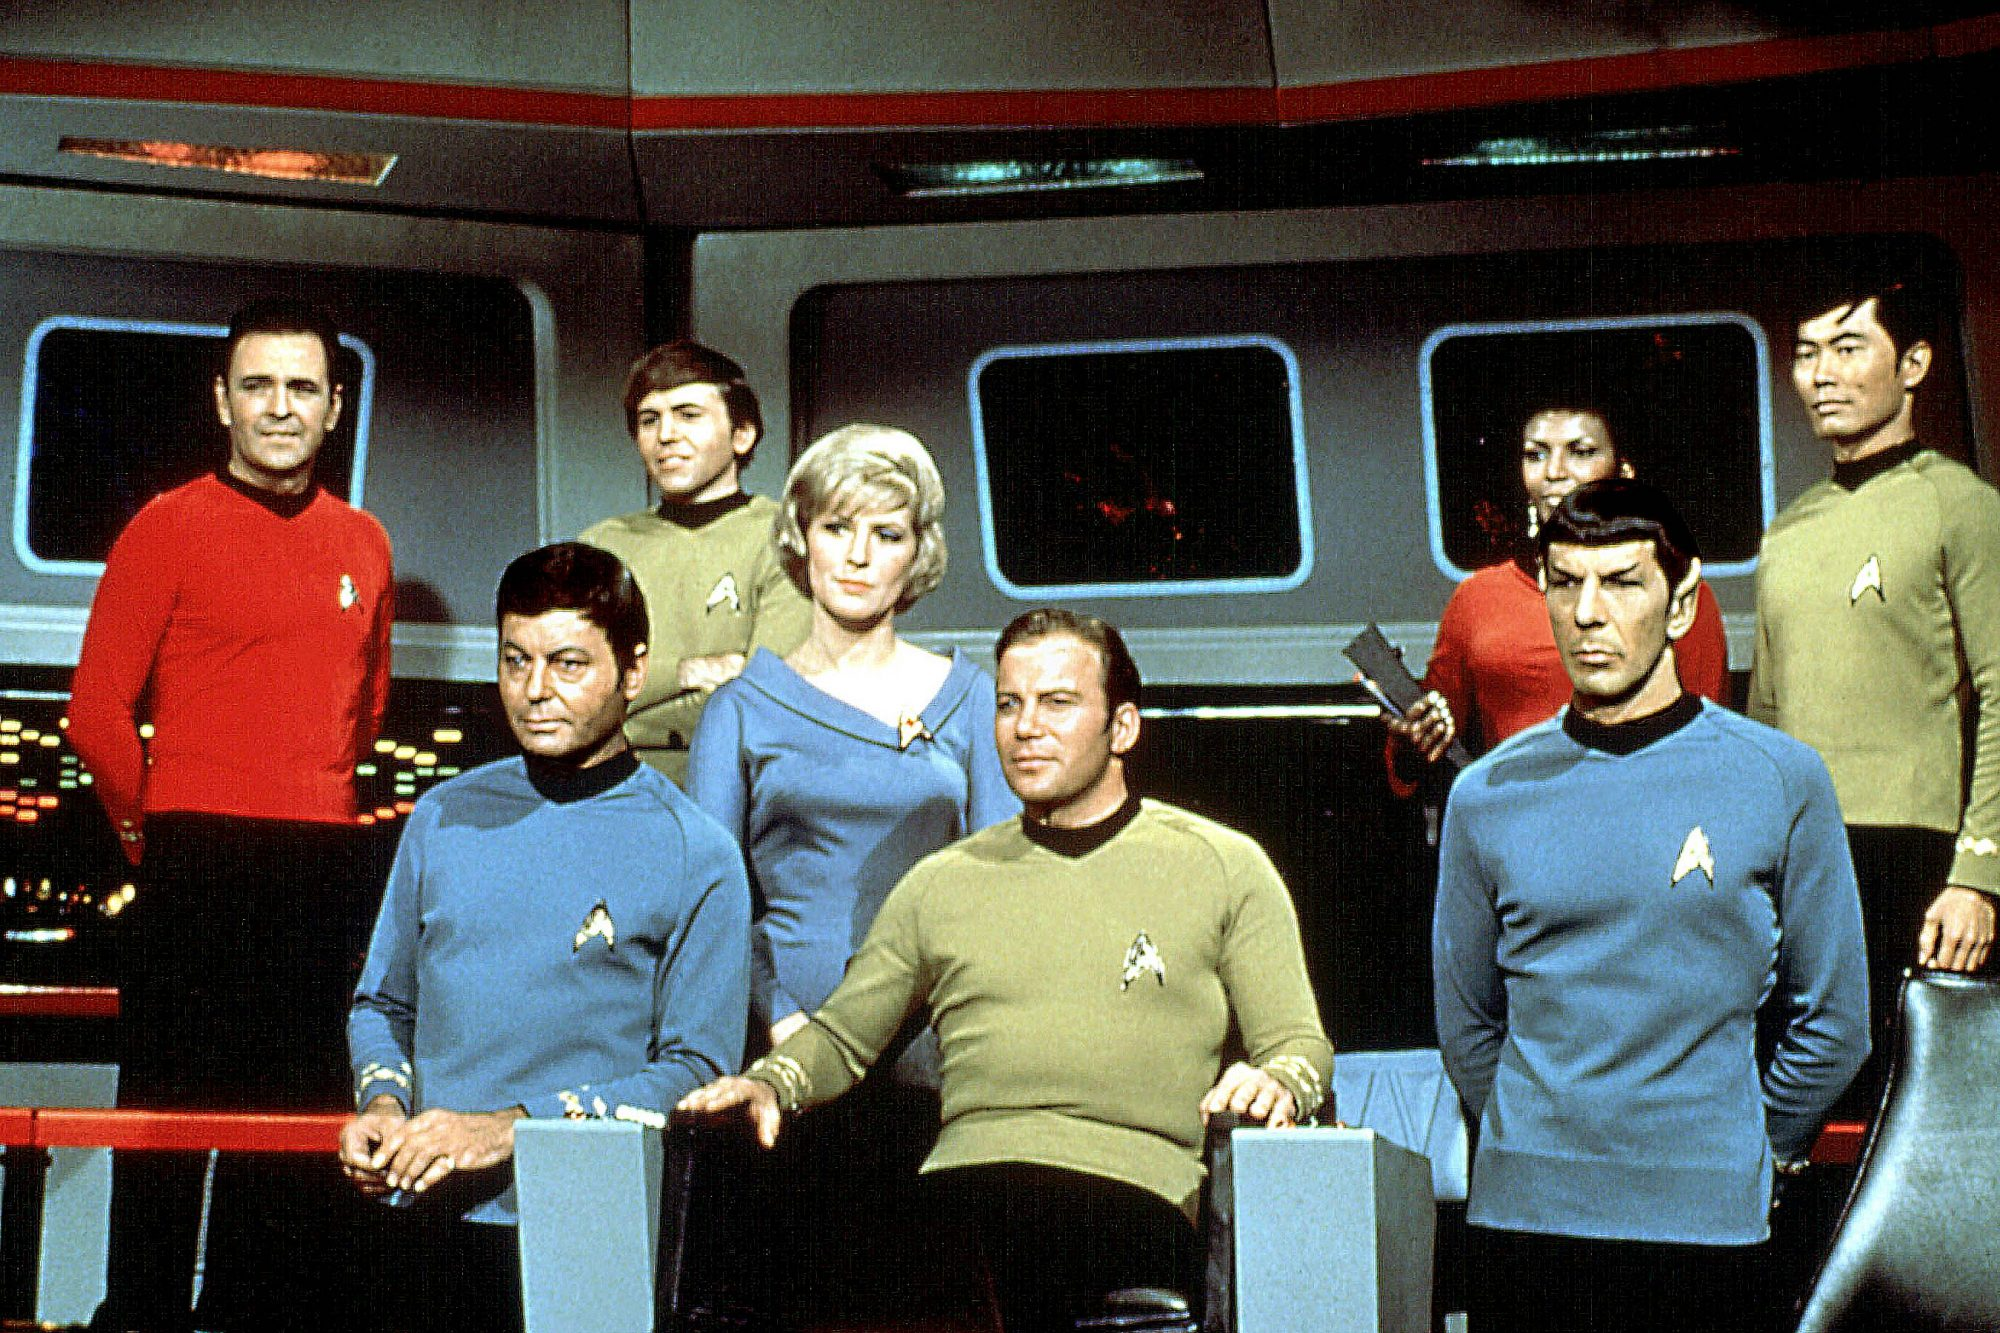 STAR TREK, James Doohan, DeForest Kelley, Walter Koenig, Majel Barrett, William Shatner, Nichelle Ni